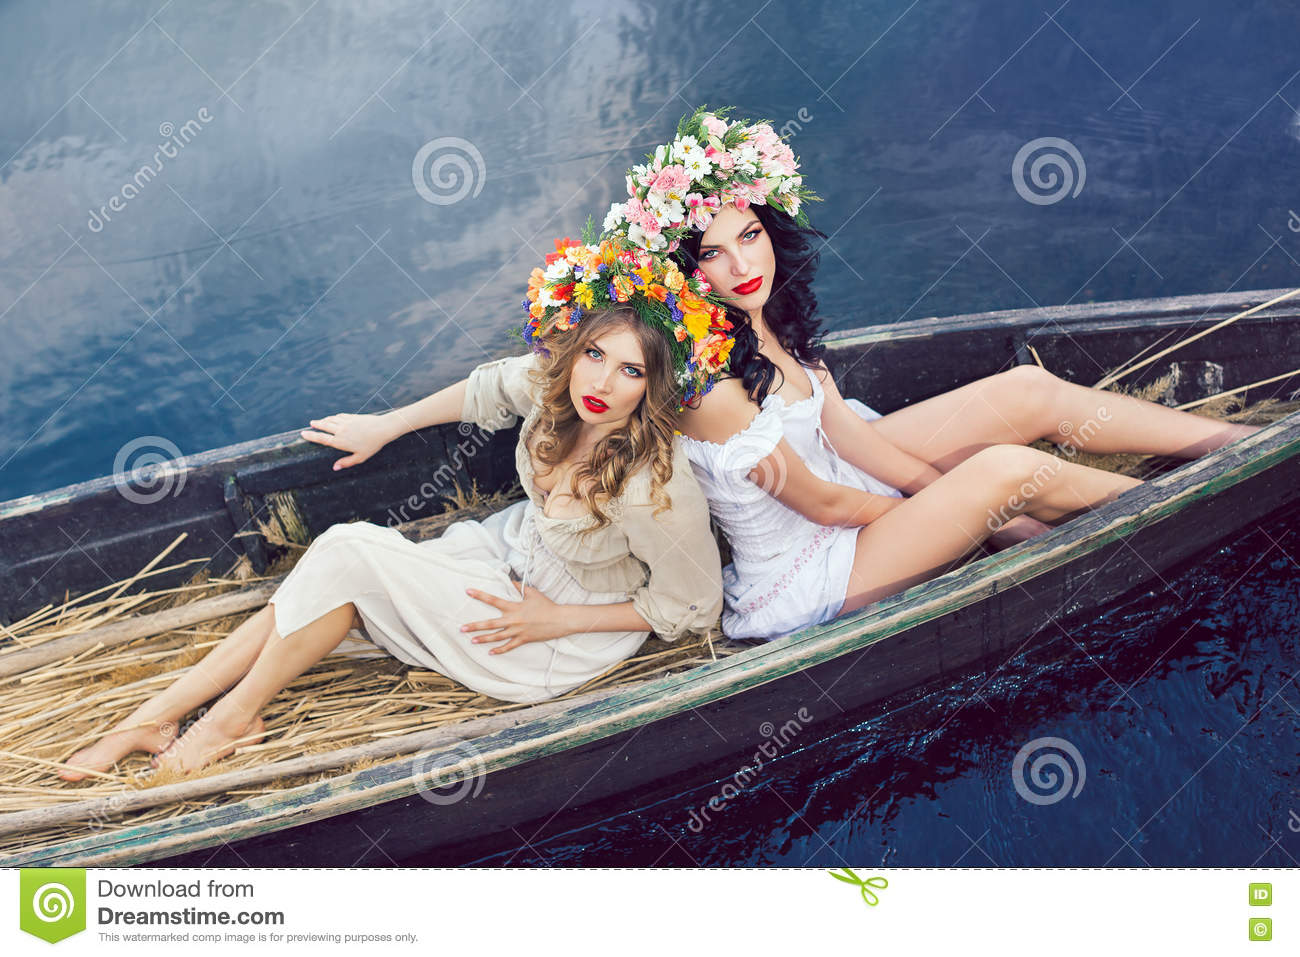 Fantasy art photo of a beautiful girls in boat